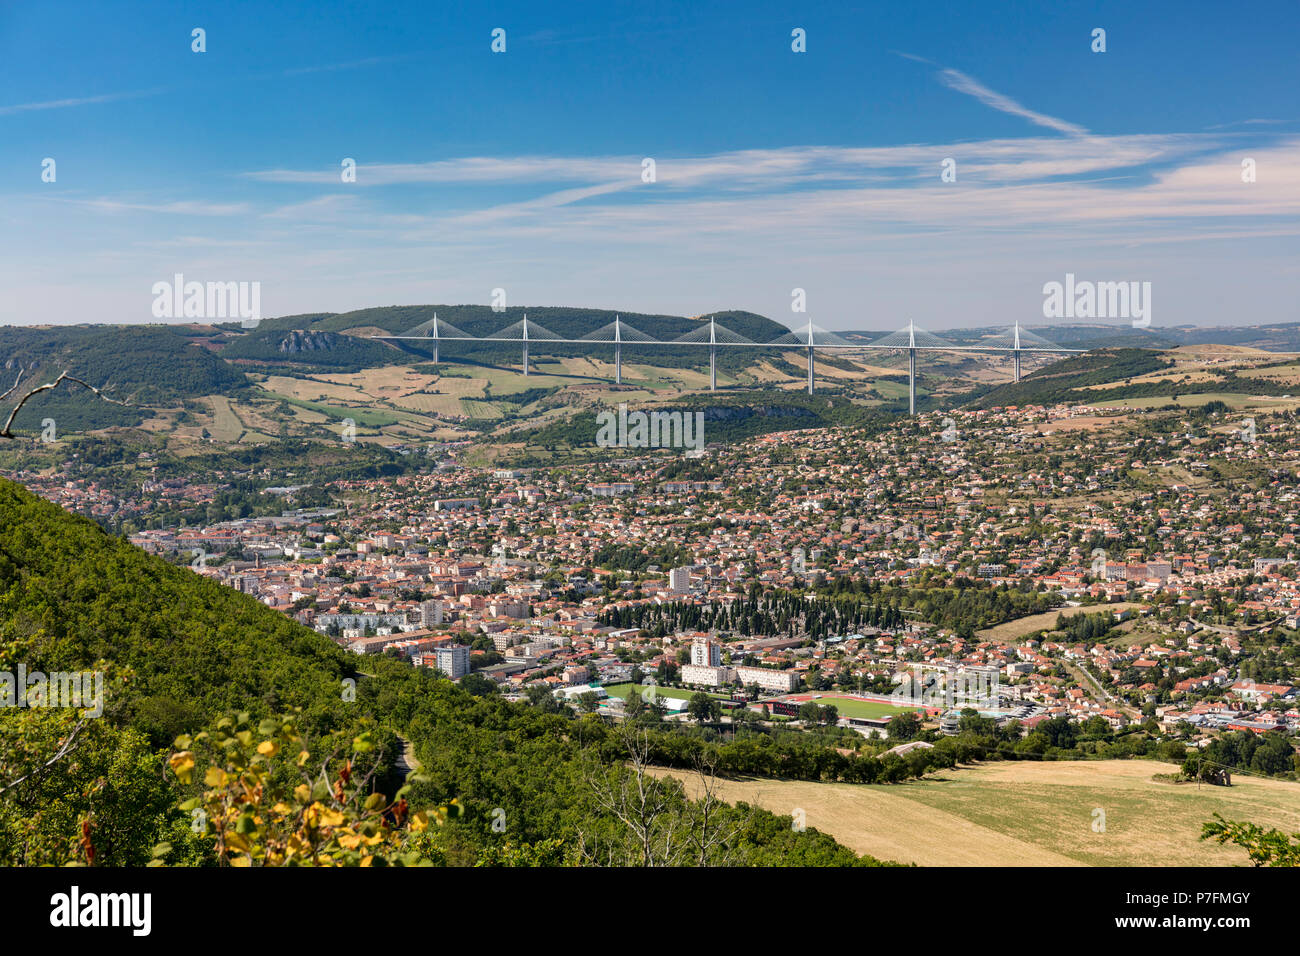 View over the Viduc de Millau and the city of Millau, Ayeron, Occitanie, France - Stock Image